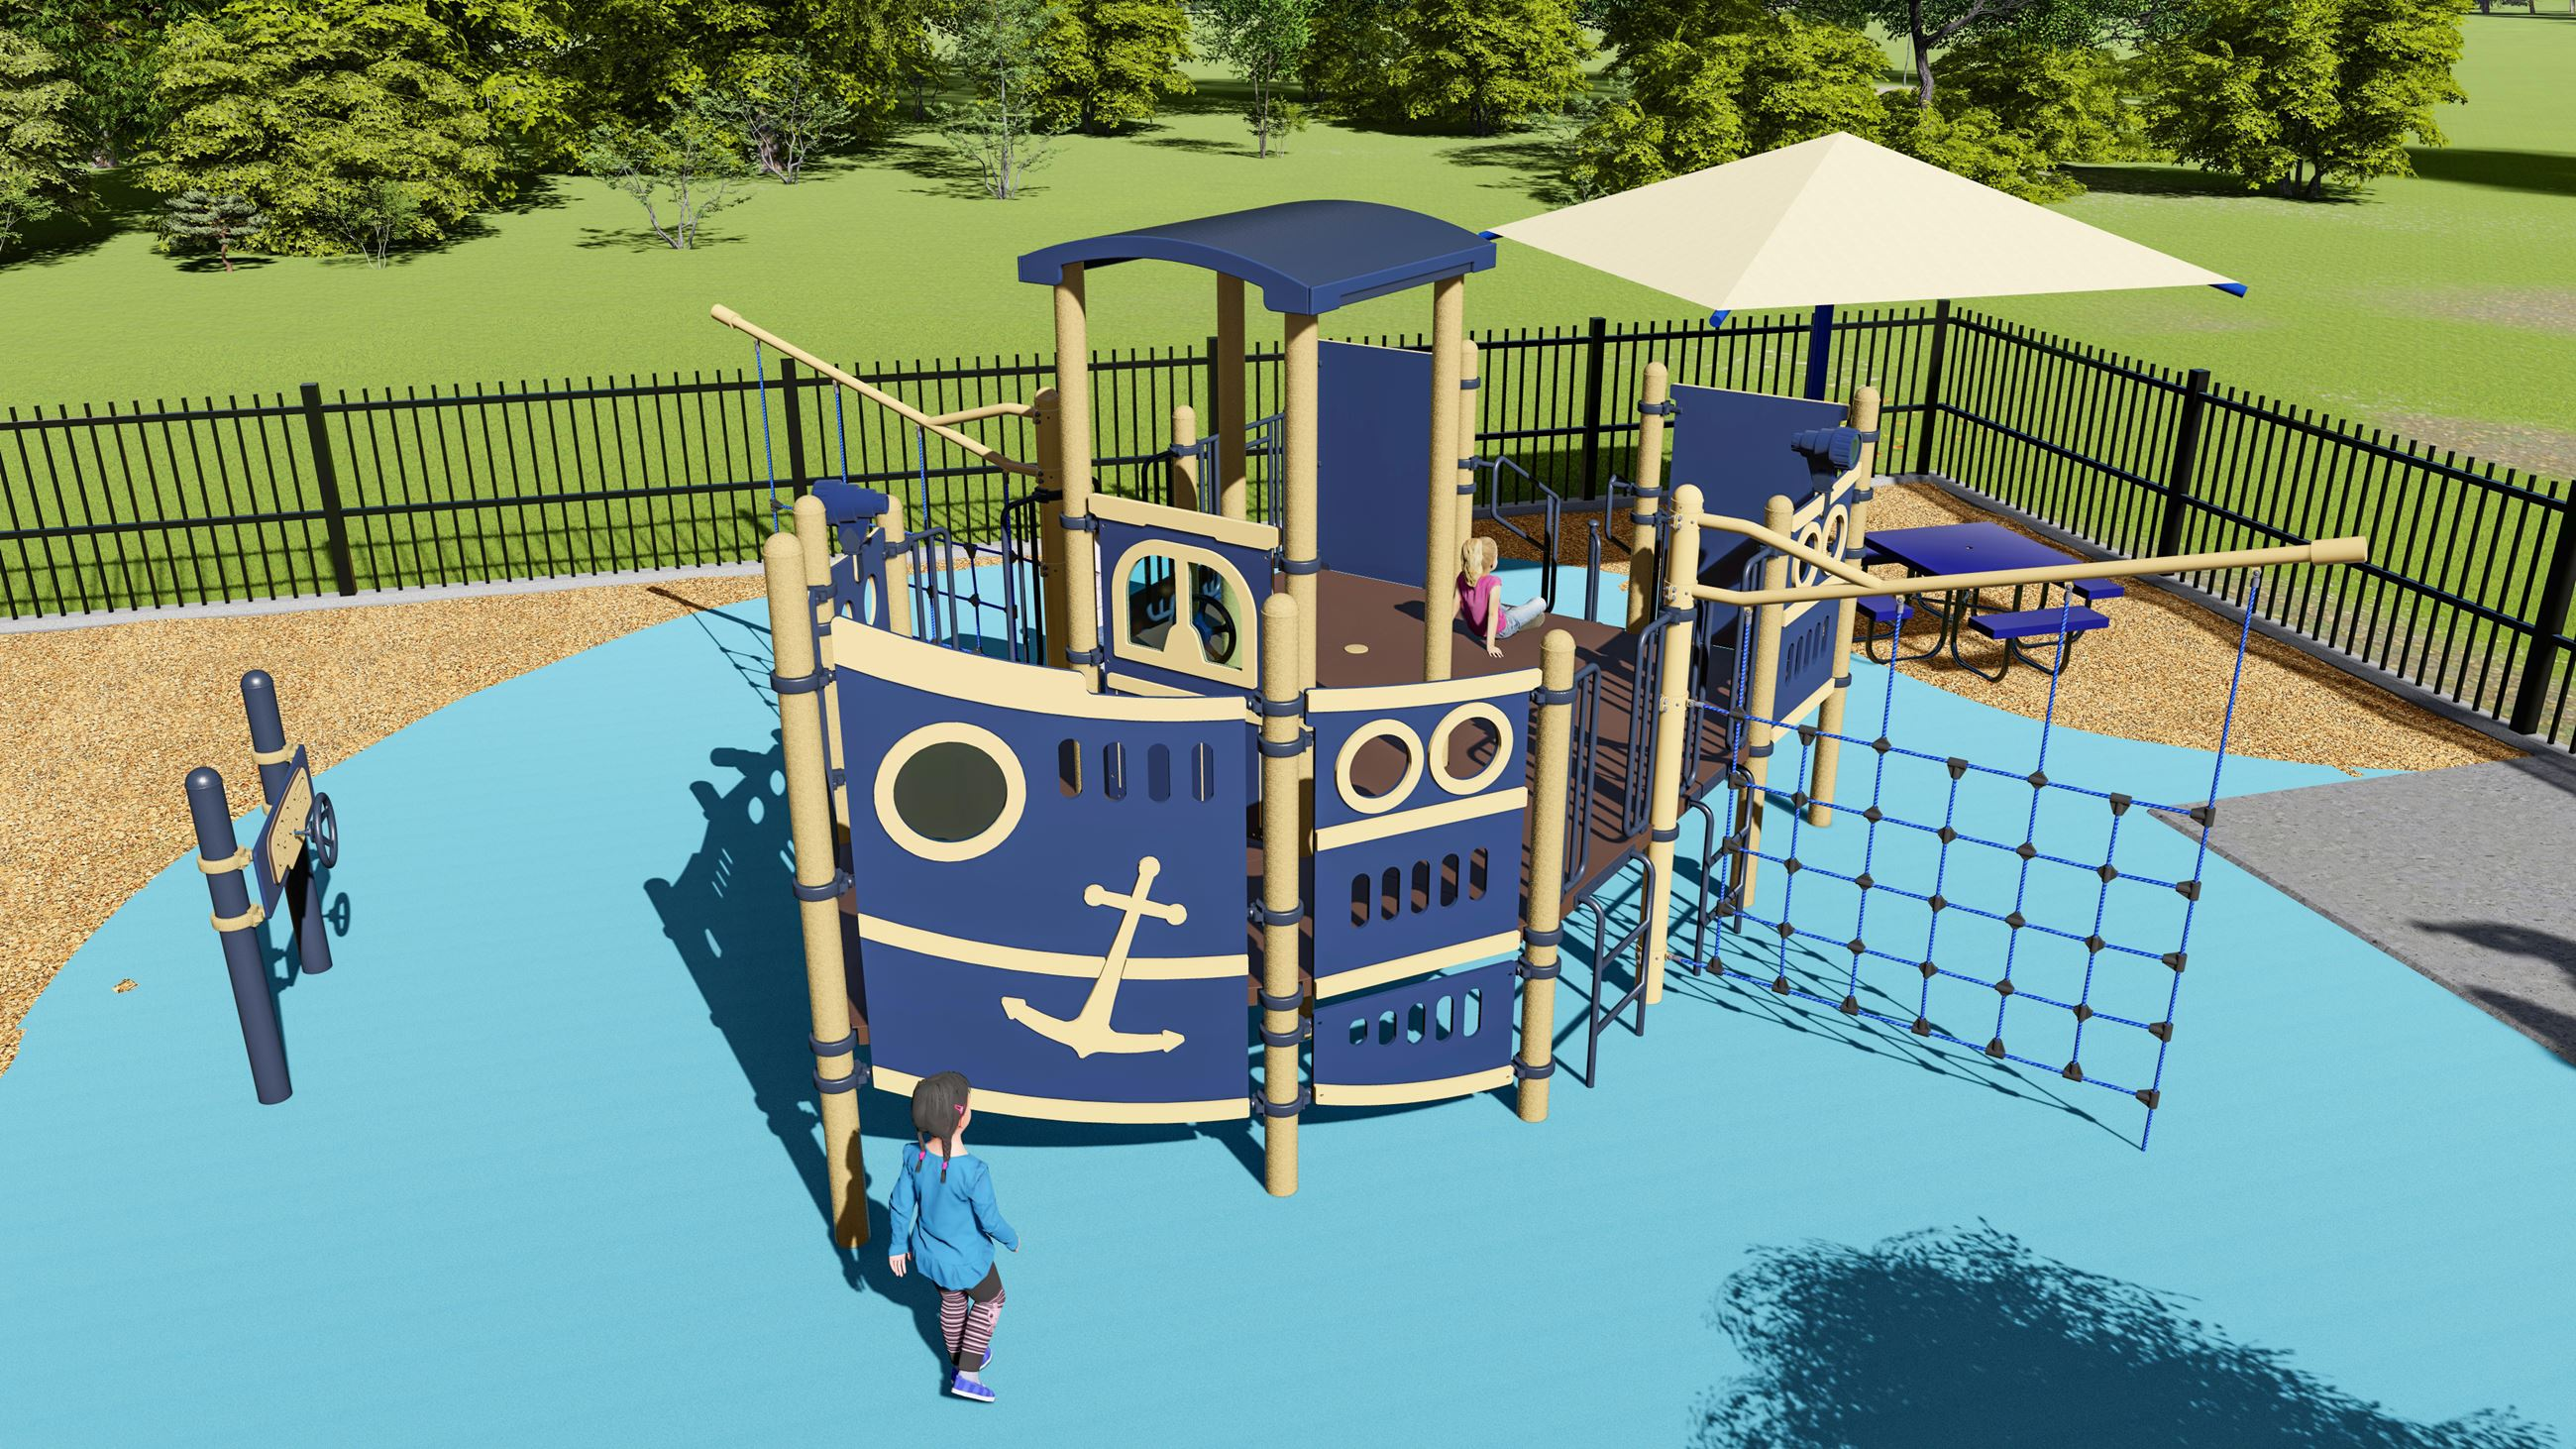 New playground equipment at Waterfront Park